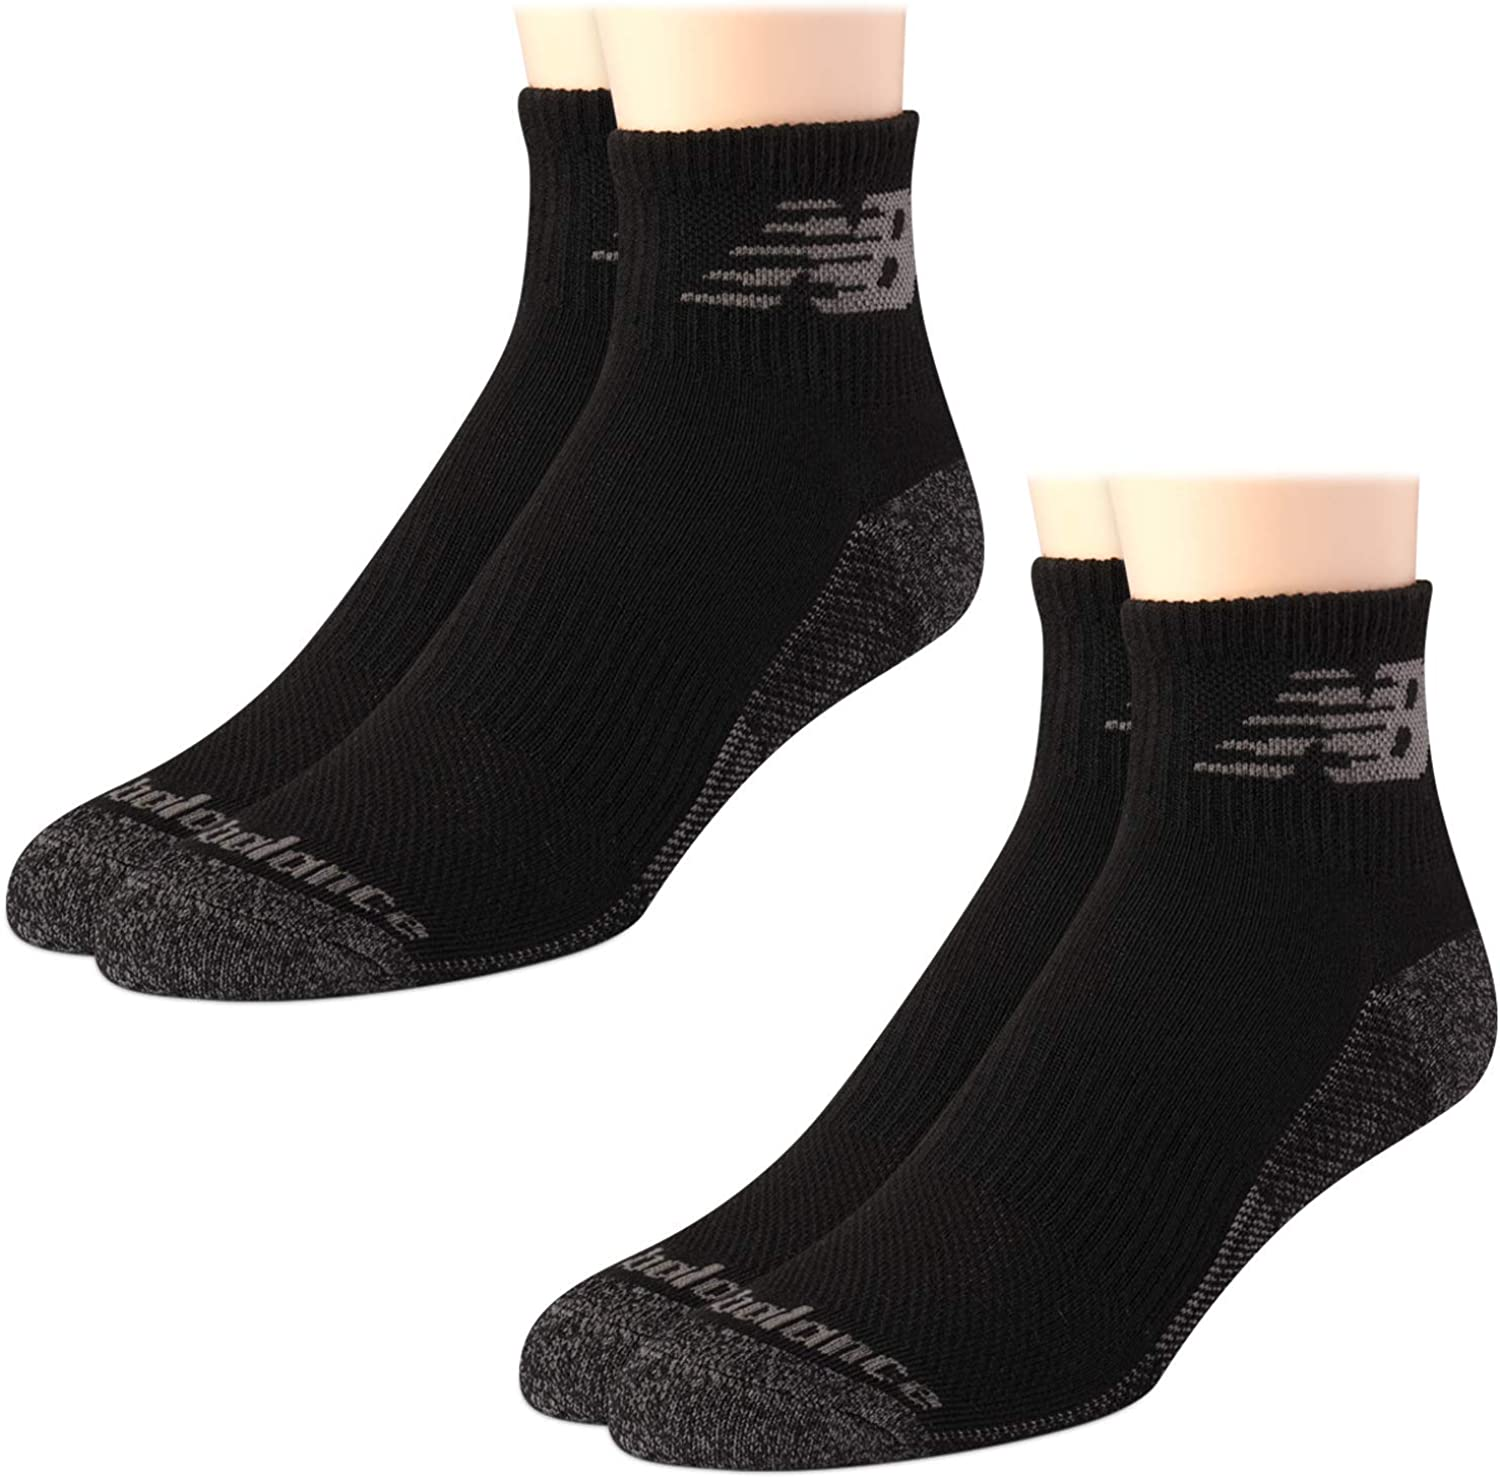 New Balance Men's Athletic Cushion Comfort Quarter Cut Socks with Cooling Technology (2 Pack)